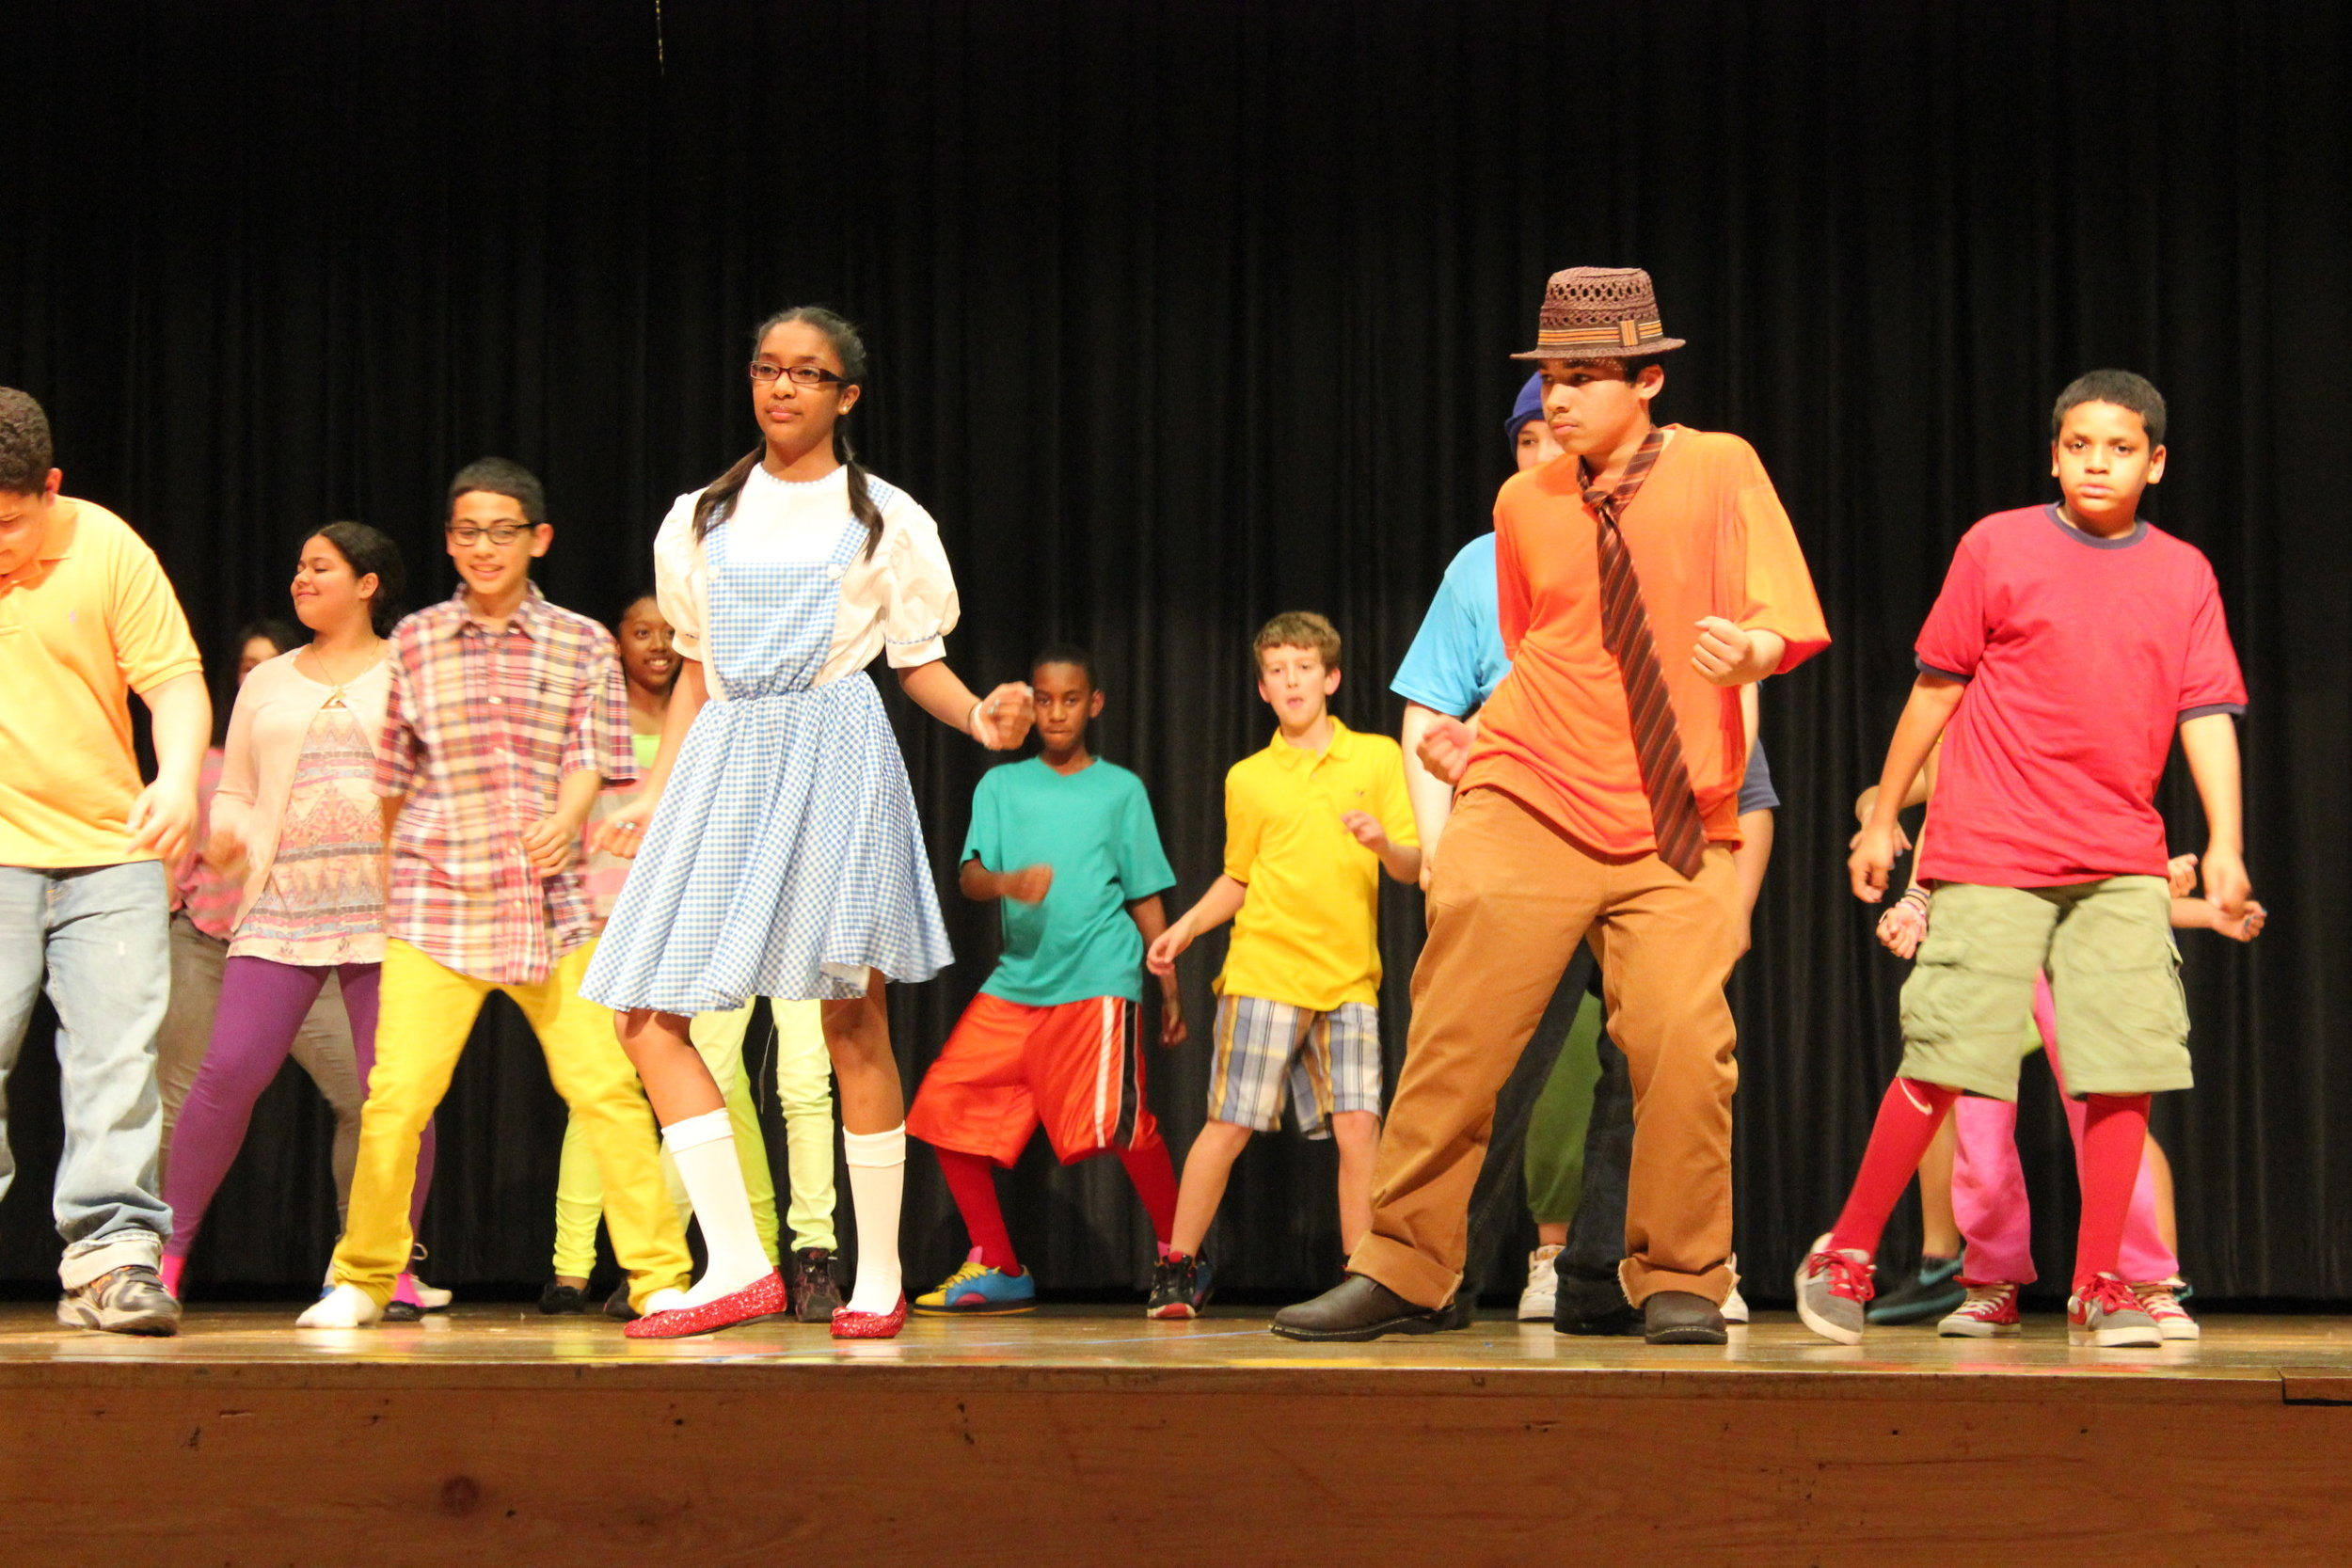 Middle school students create, mount and perform in shows on Broadway as part of the Shubert Foundation / MTI Broadway Junior Musical Theater Program